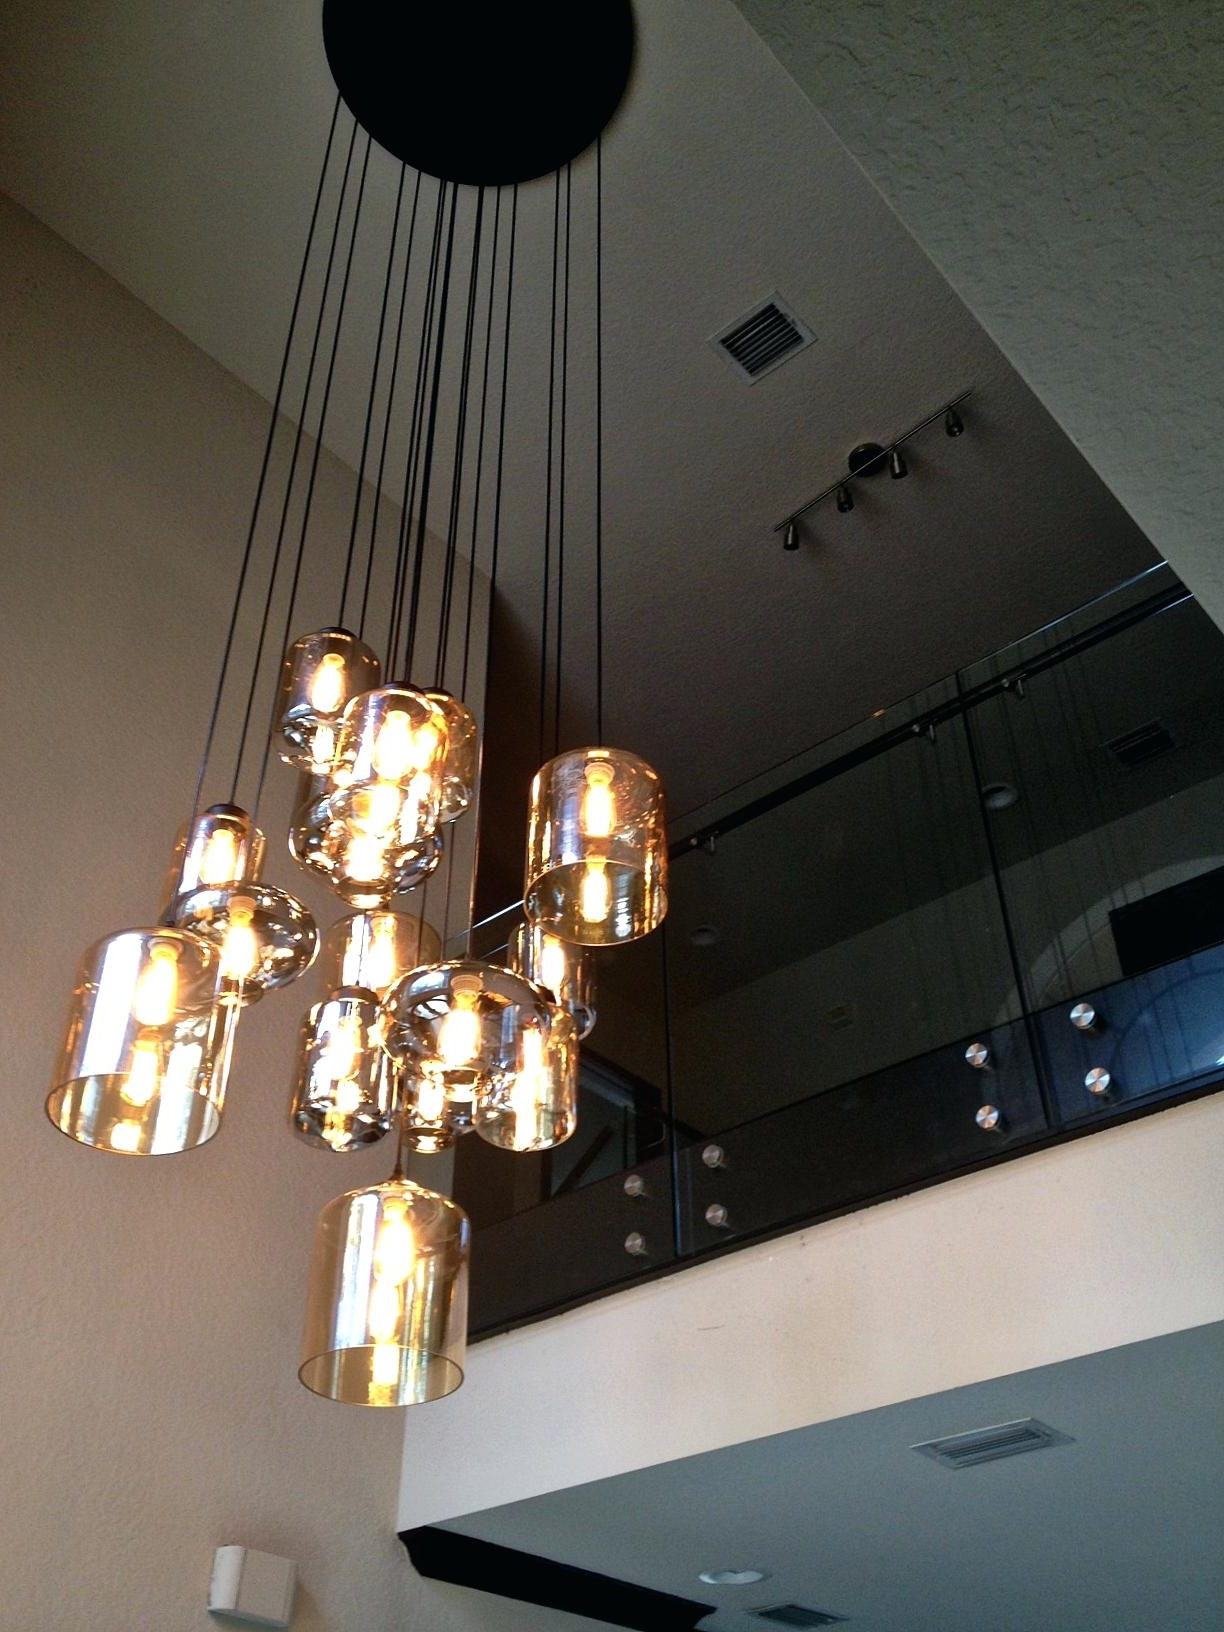 Stairwell Chandelier Lighting For 2017 Pendant Light: Stairwell Pendant Light (View 11 of 15)